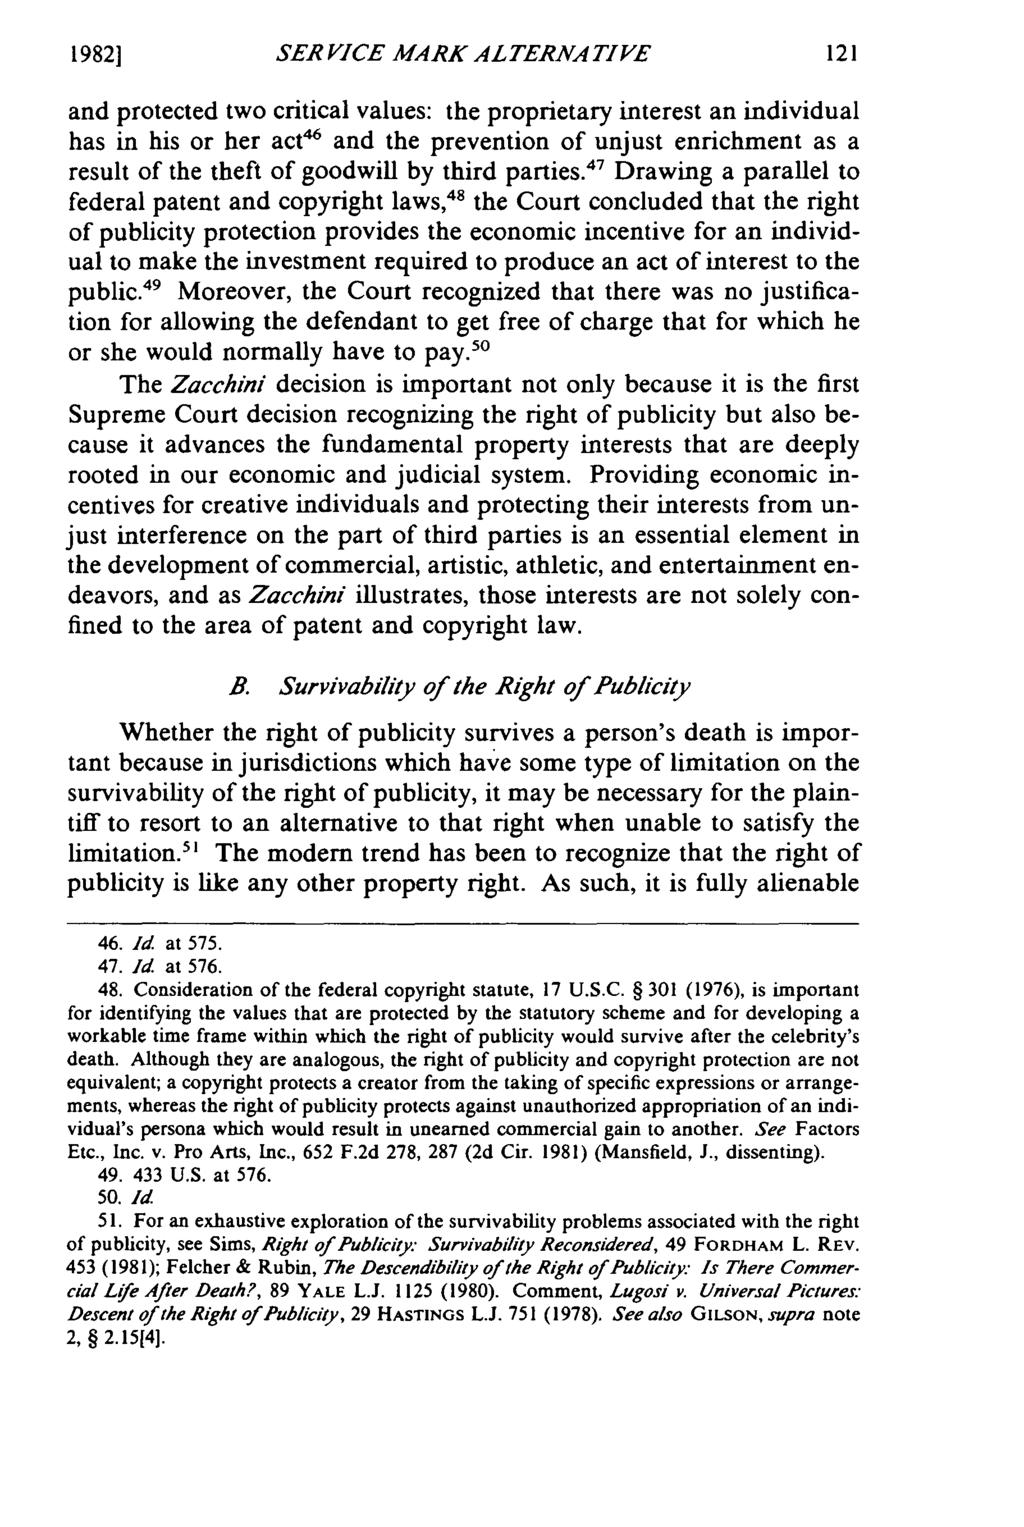 19821 SER VICE MARK ALTERNATIVE and protected two critical values: the proprietary interest an individual has in his or her act 46 and the prevention of unjust enrichment as a result of the theft of